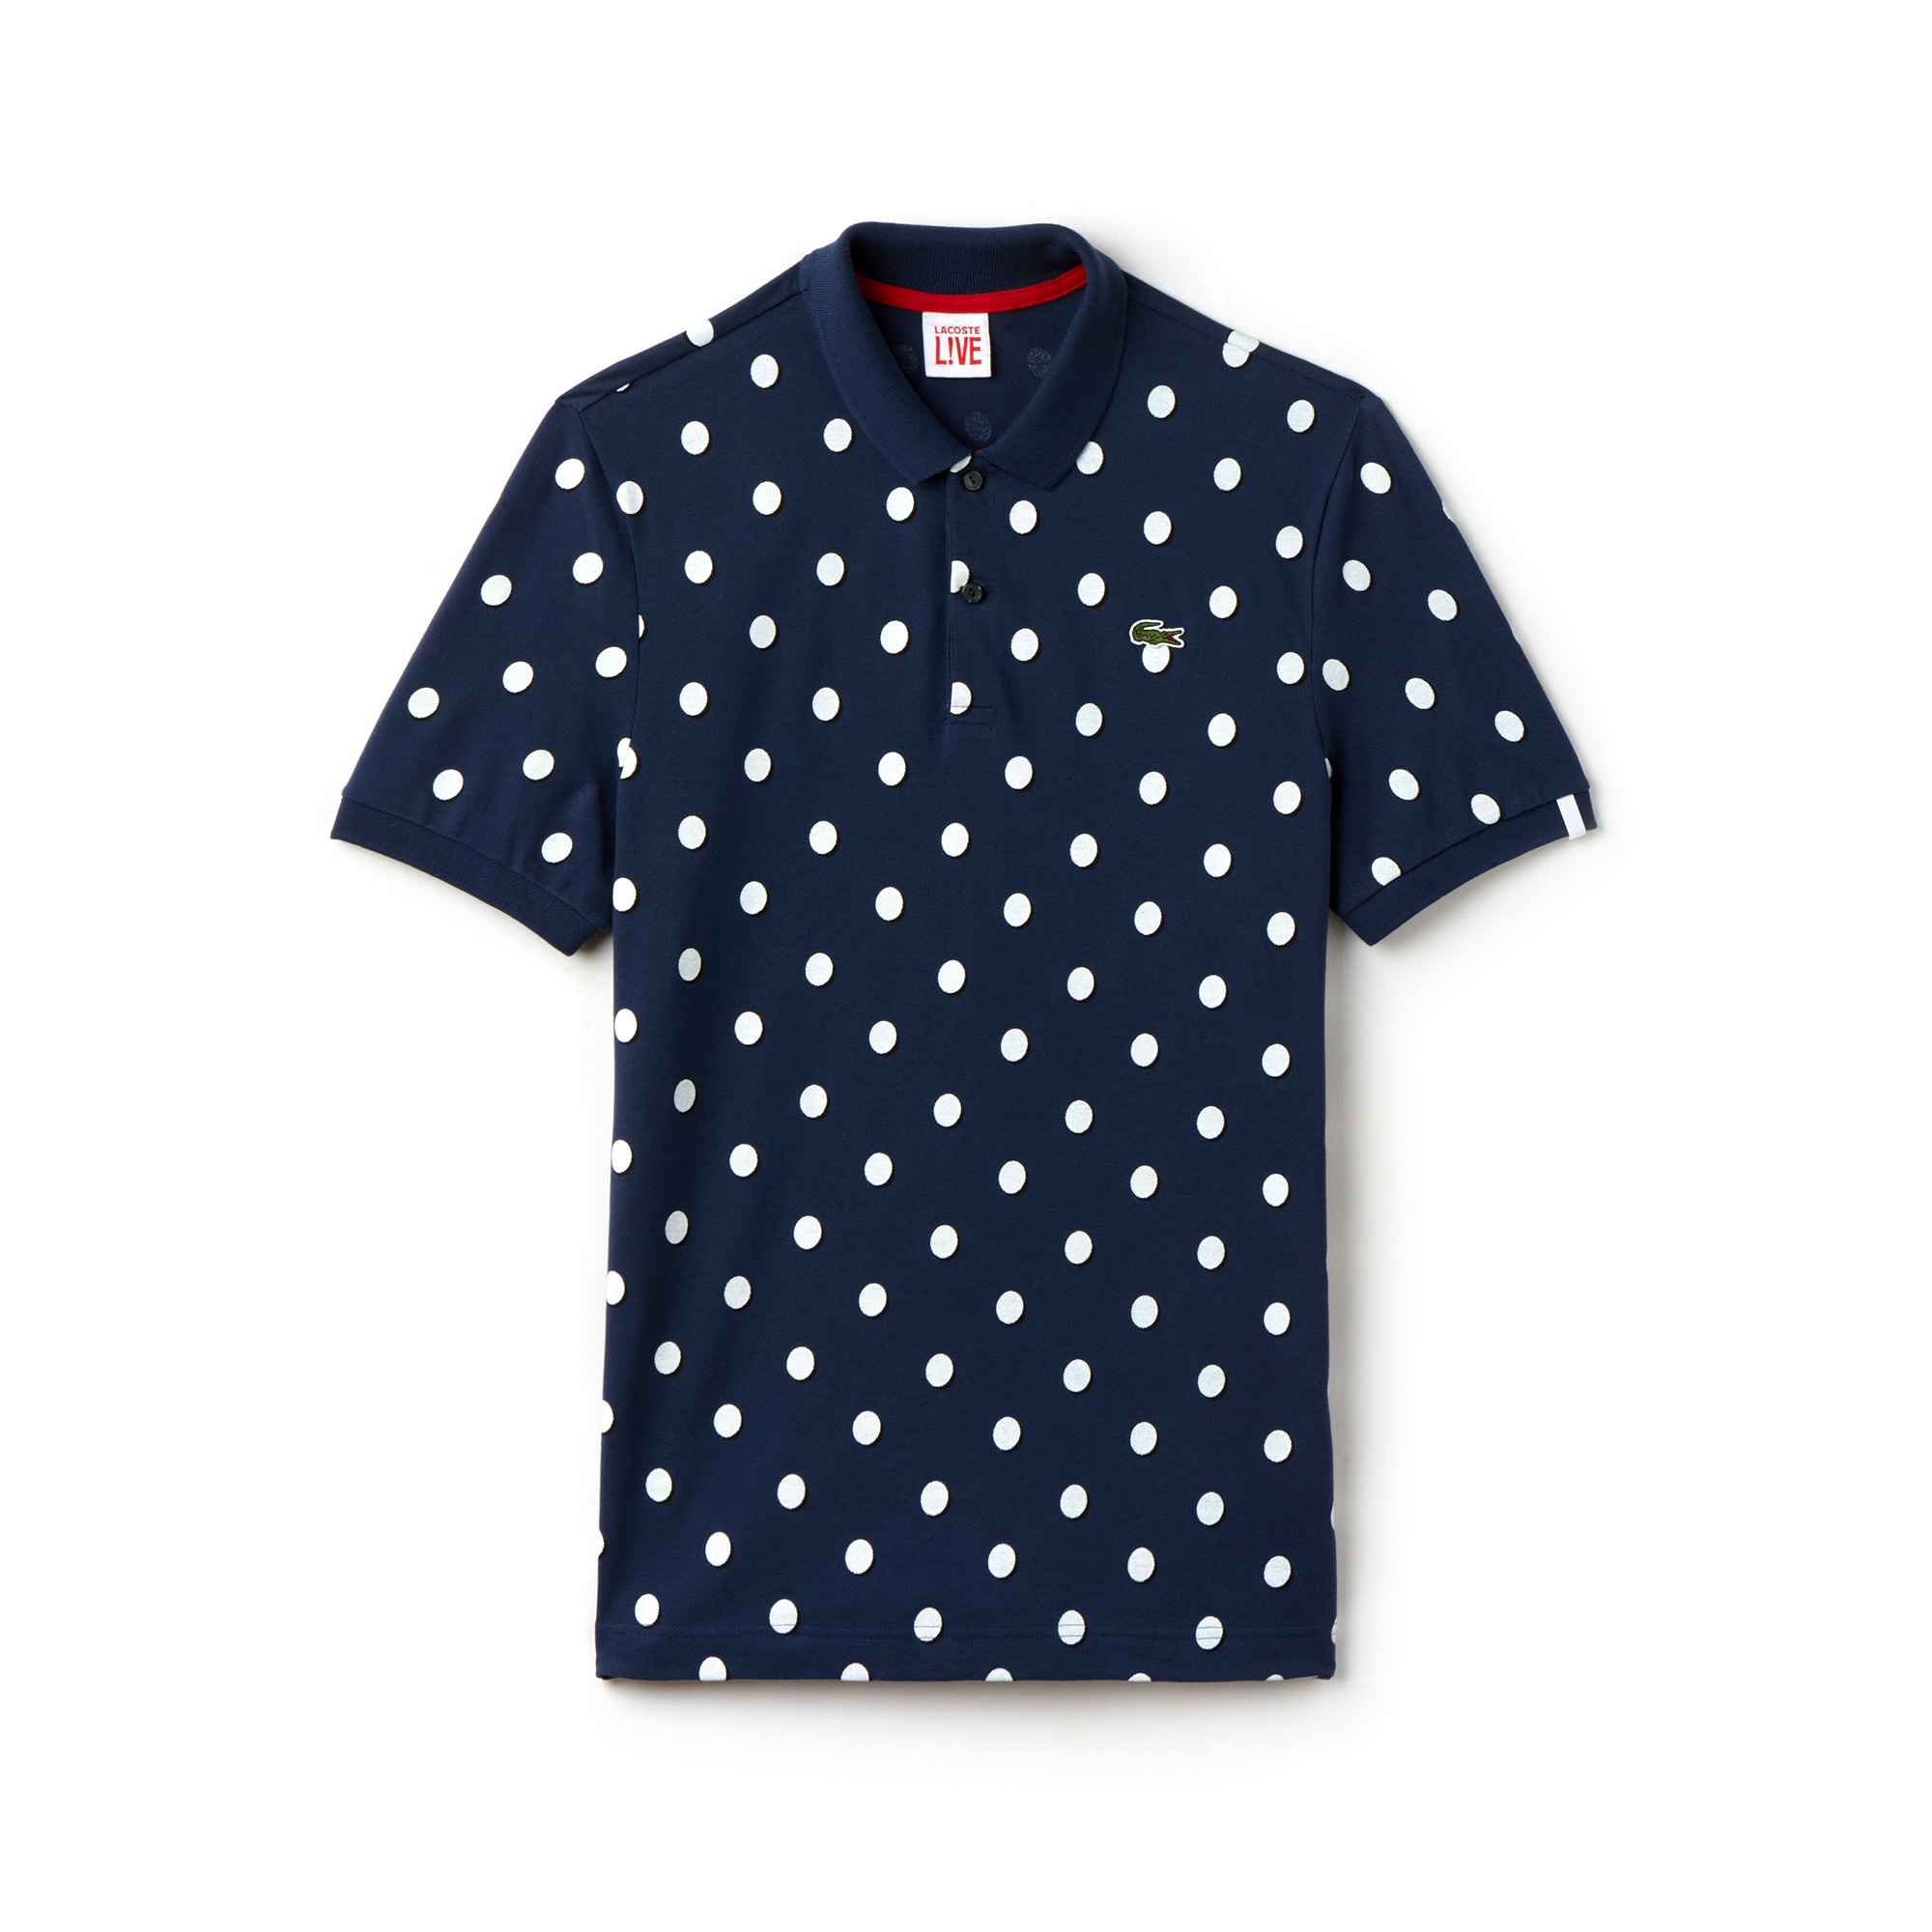 Men's L!VE Regular Fit Polka Dot Petit Piqué Polo Shirt